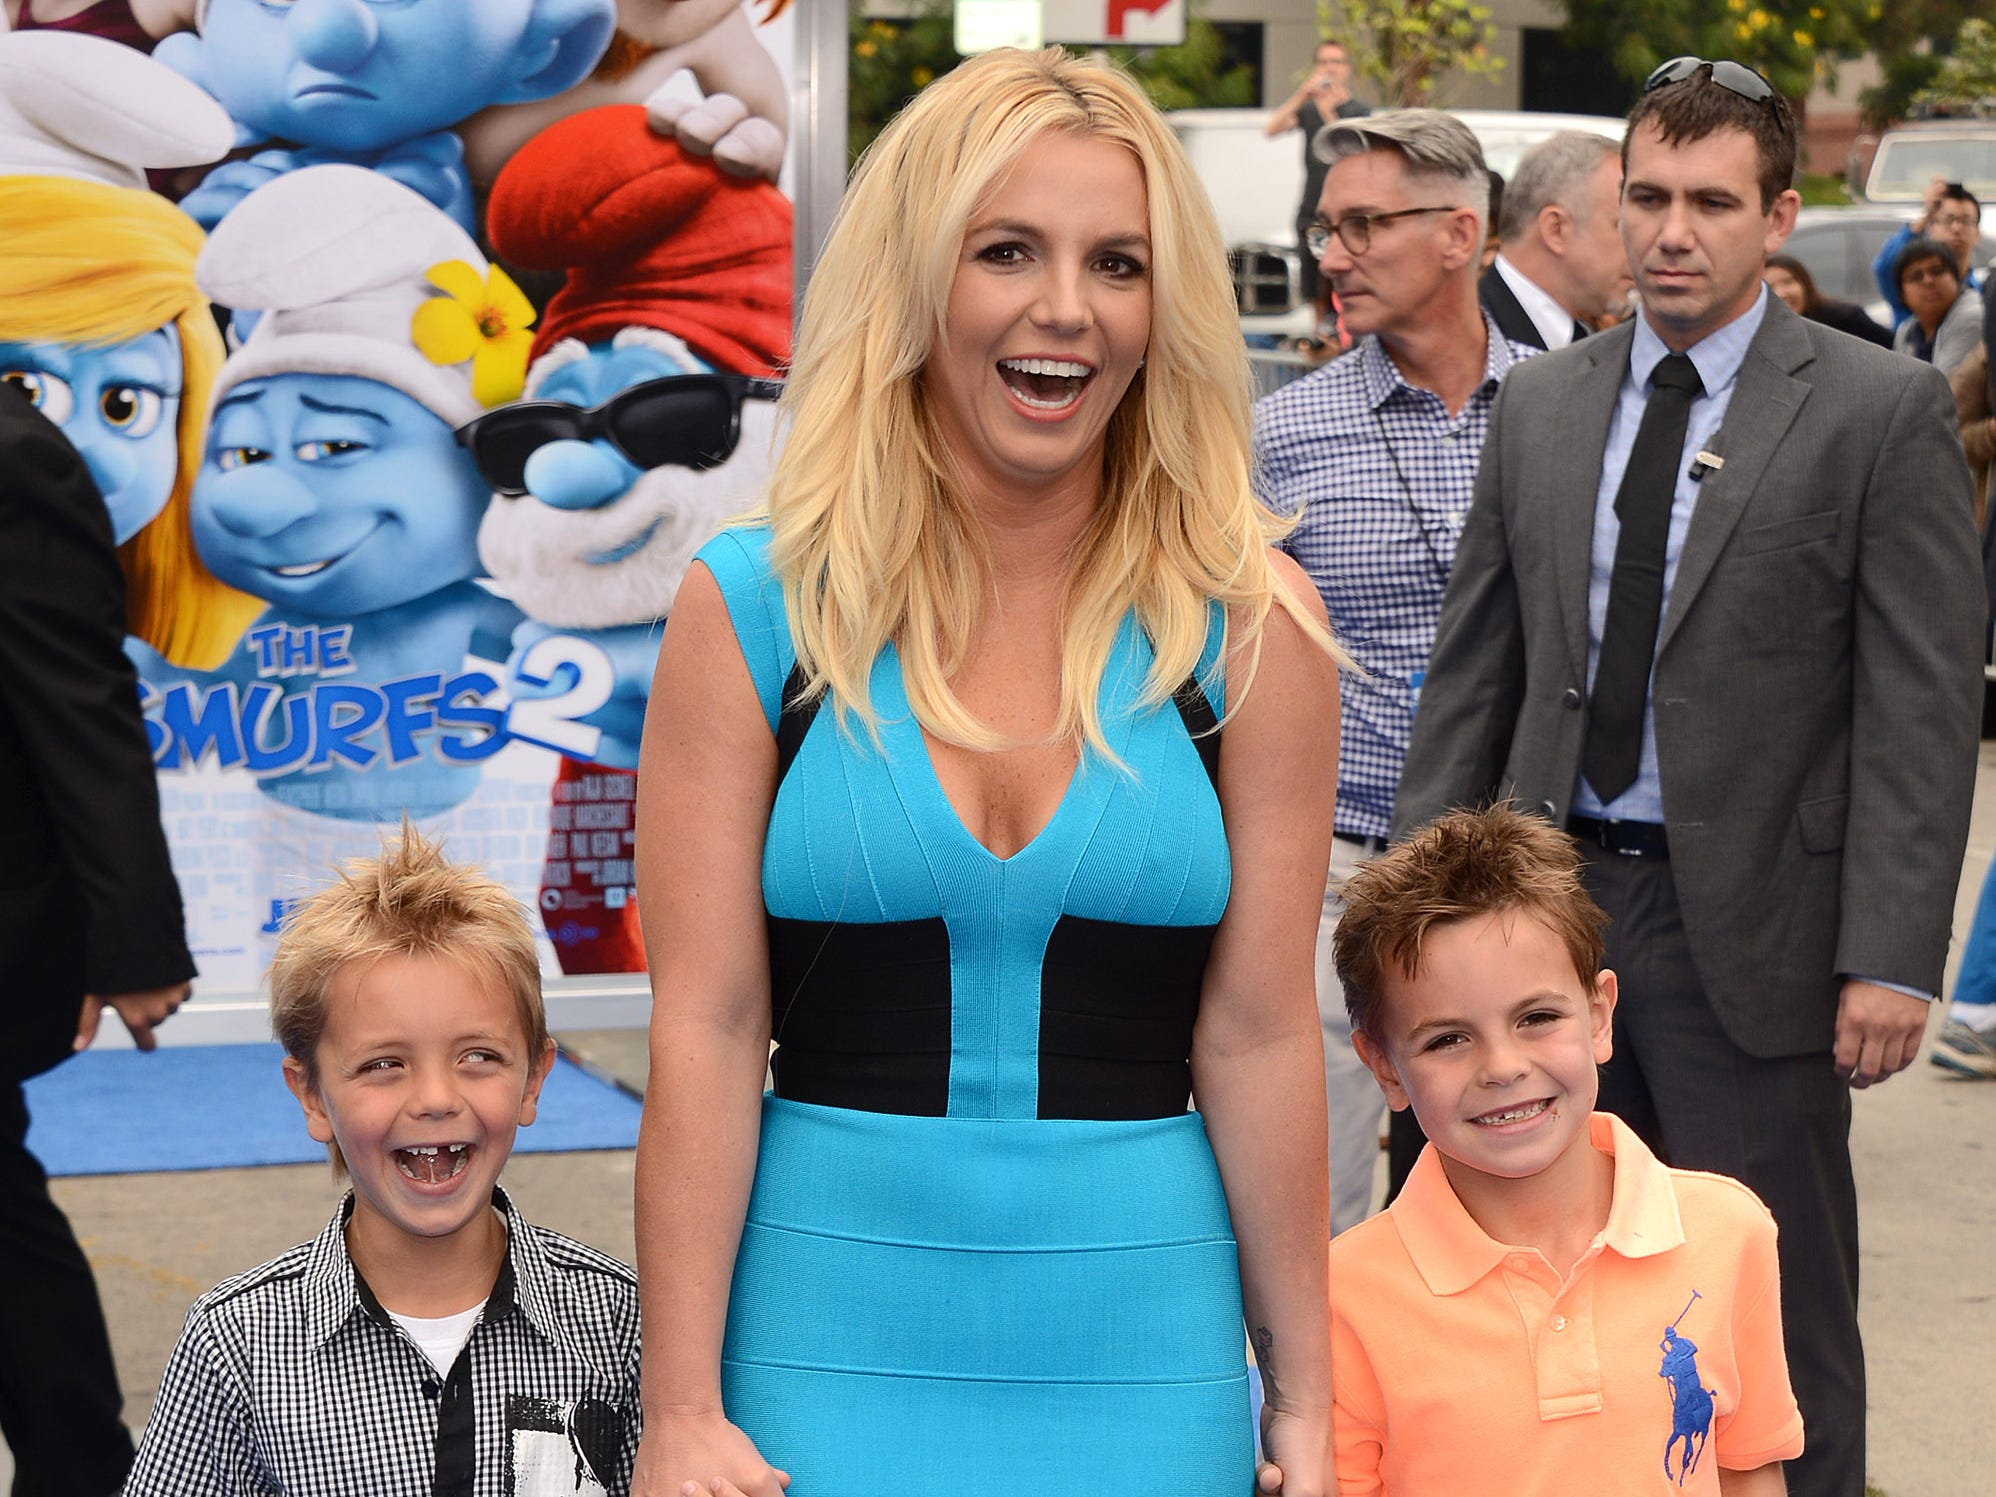 """Britney Spears, center, with sons Sean Federline and Jayden James Federline arrives at the world premiere of """"The Smurfs 2"""" at the Regency Village Theatre on Sunday, July 28, 2013 in Los Angeles. (Photo by Jordan Strauss/Invision/AP) ORG XMIT: CAJS104"""